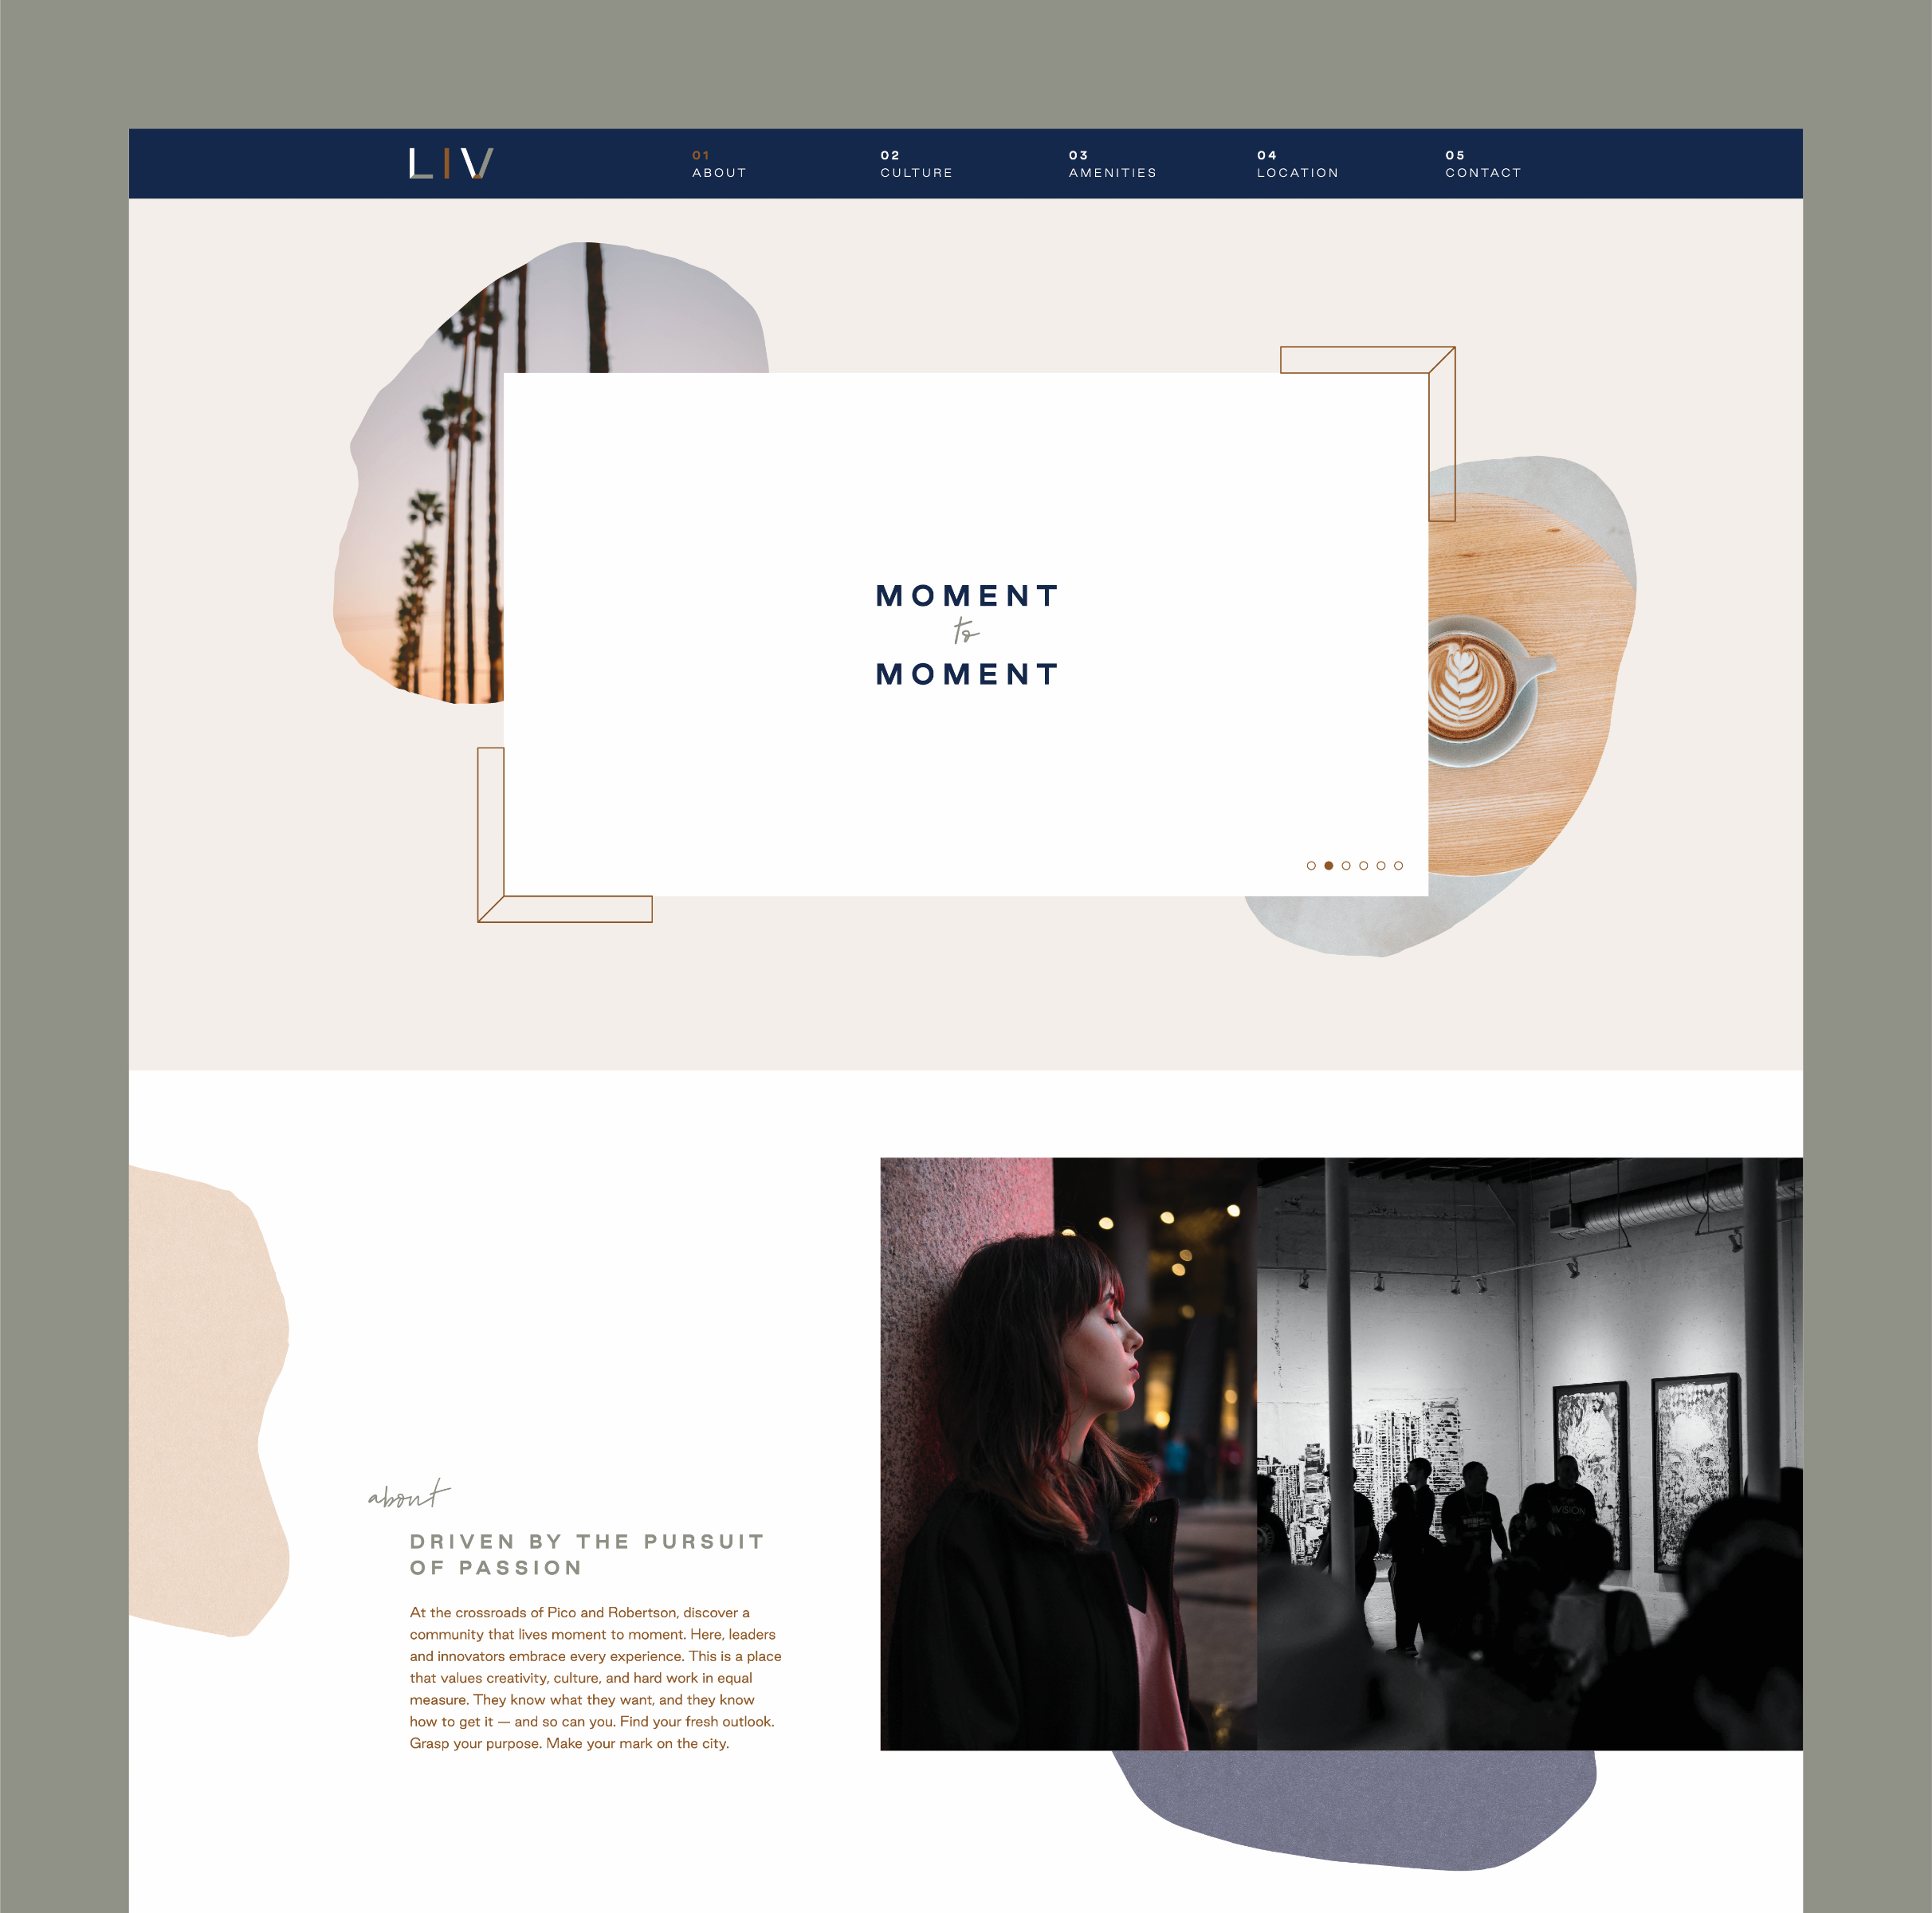 Website – About